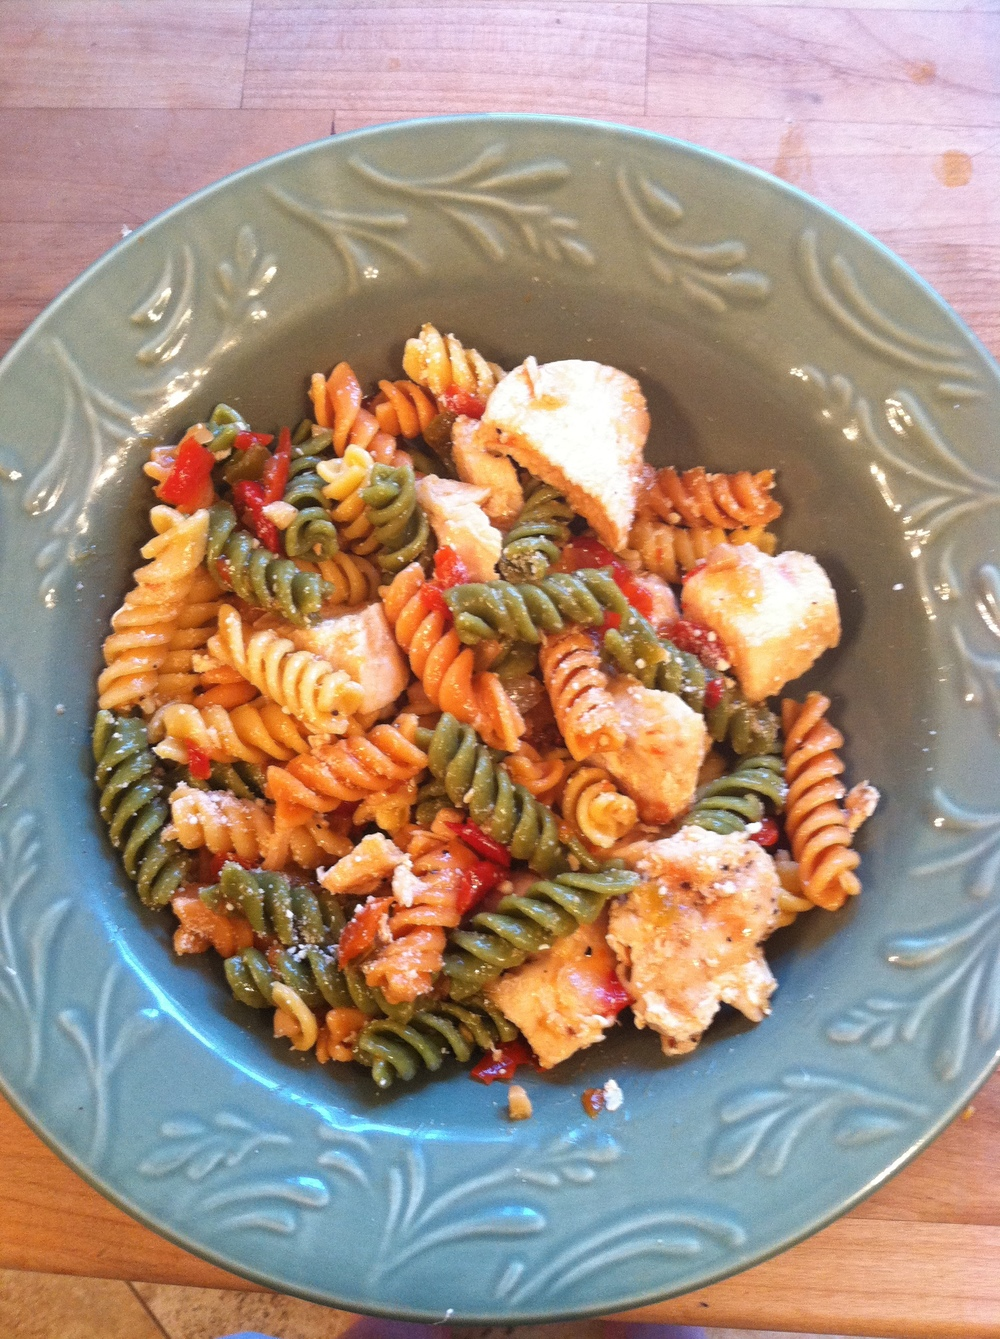 Pepper and Garlic Pasta Salad with Baked Chicken